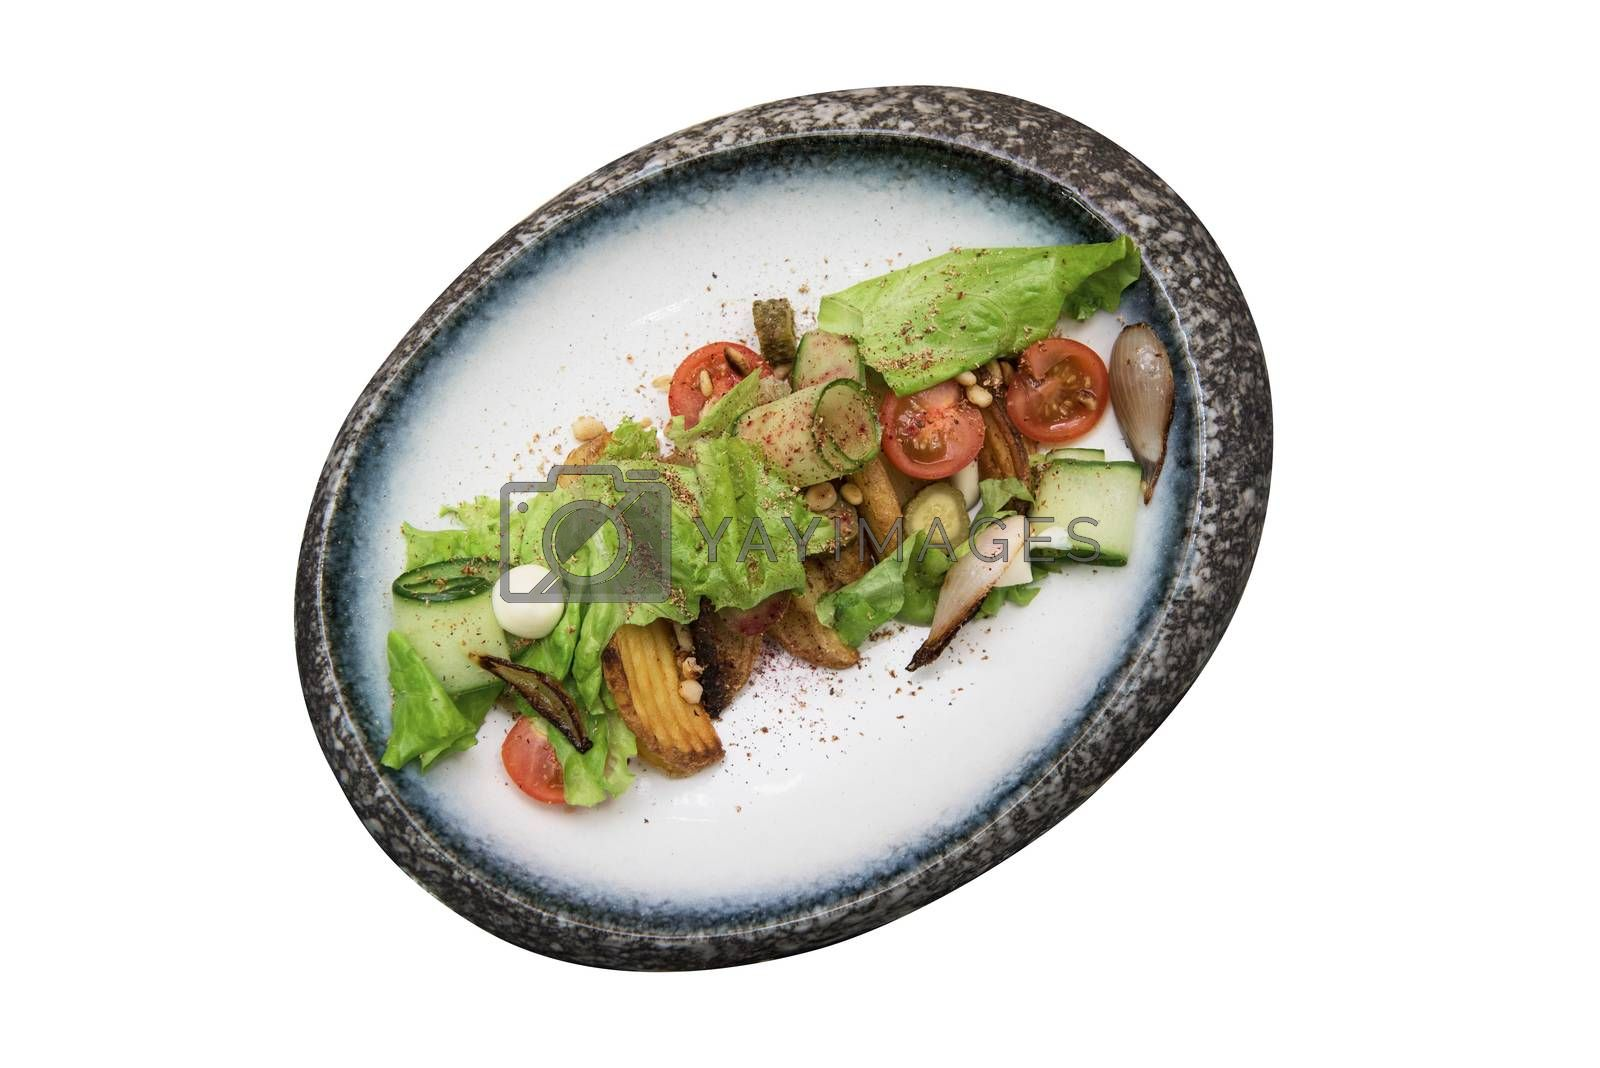 Salad with fried potato lettuce pickled cucumbers and tomatoes on decorate plate isolated on white background